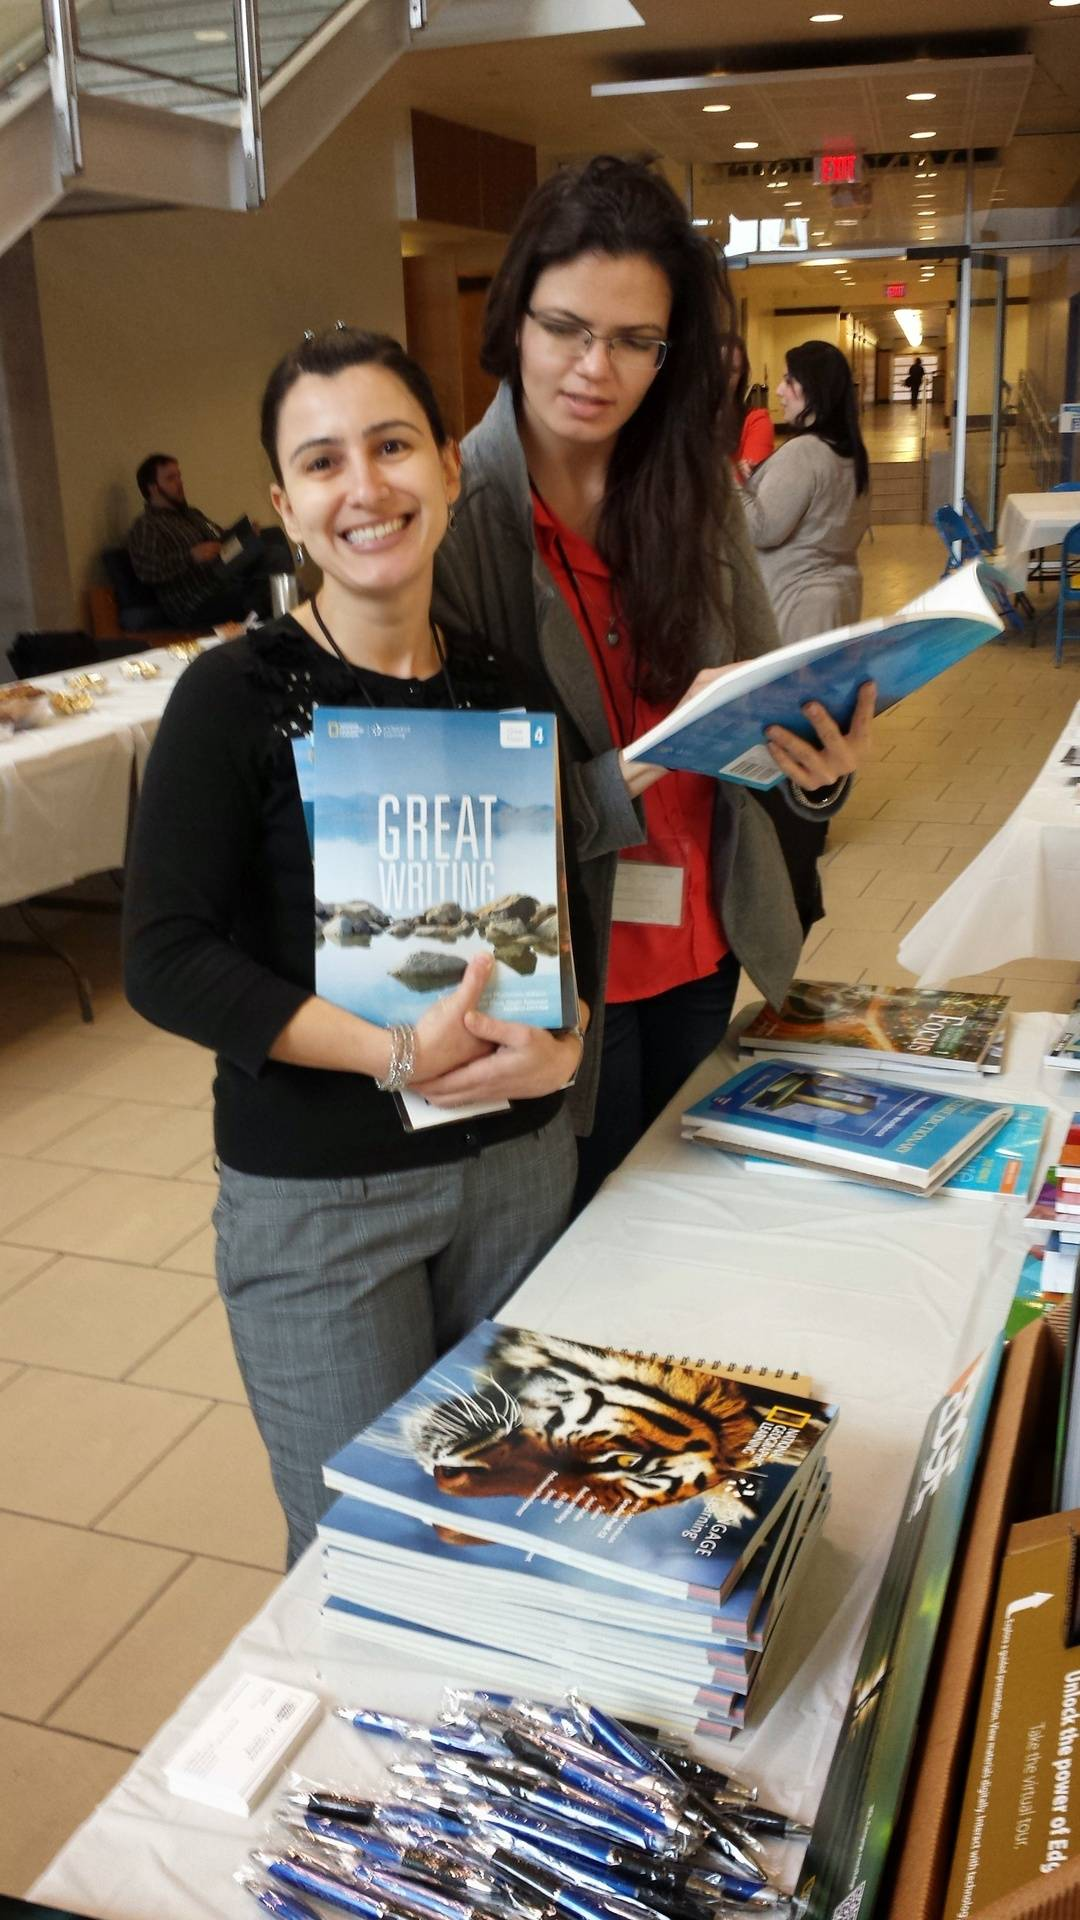 Lindsei and Livia browse publishers' materials